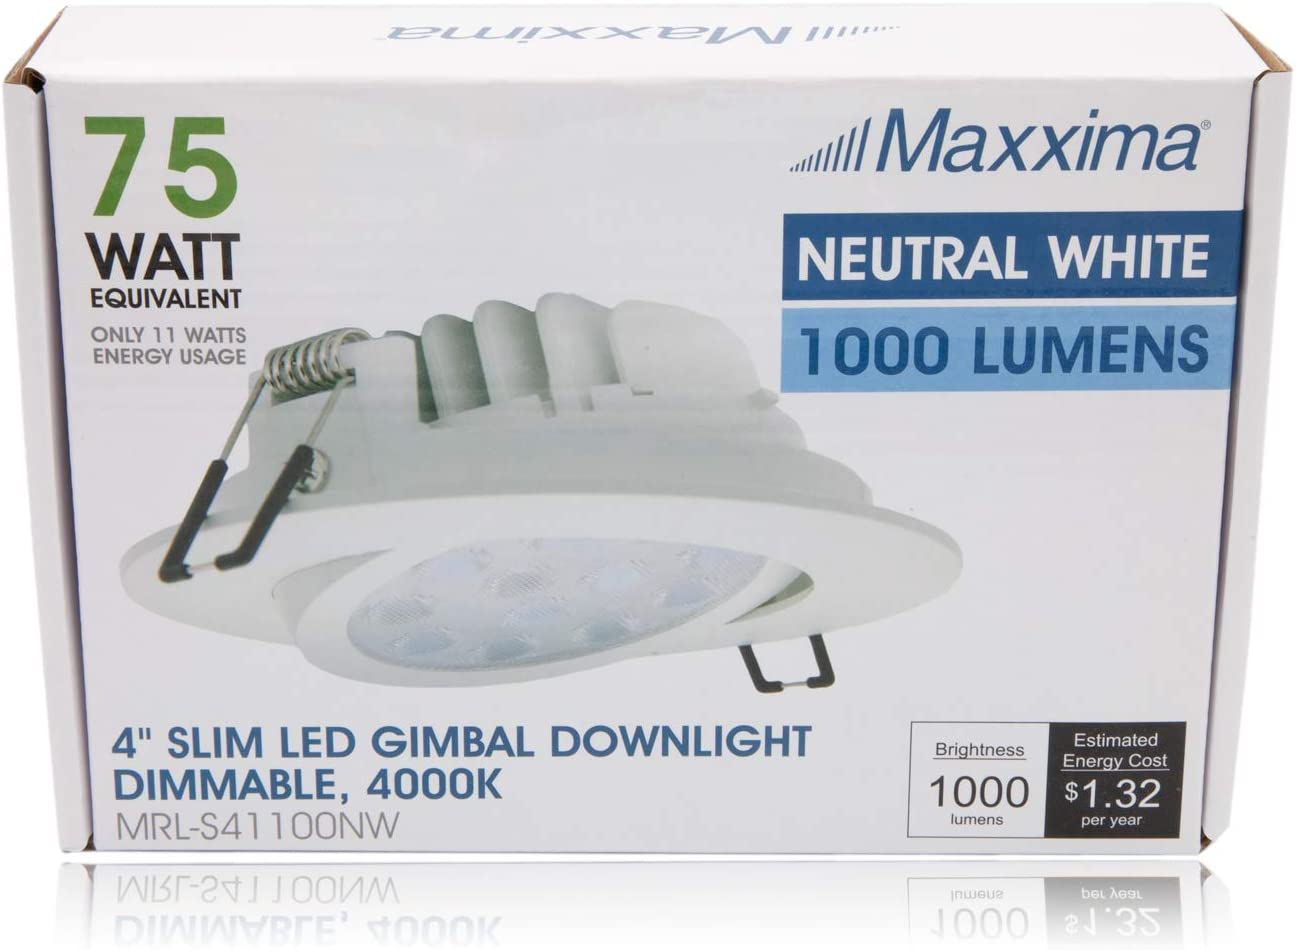 Recessed Retrofit Slim Round LED Gimbal Downlight Maxxima 4 in Flat Panel Light Fixture 1000 Lumens Dimmable 11 Watt Junction Box Included Warm White 2700K